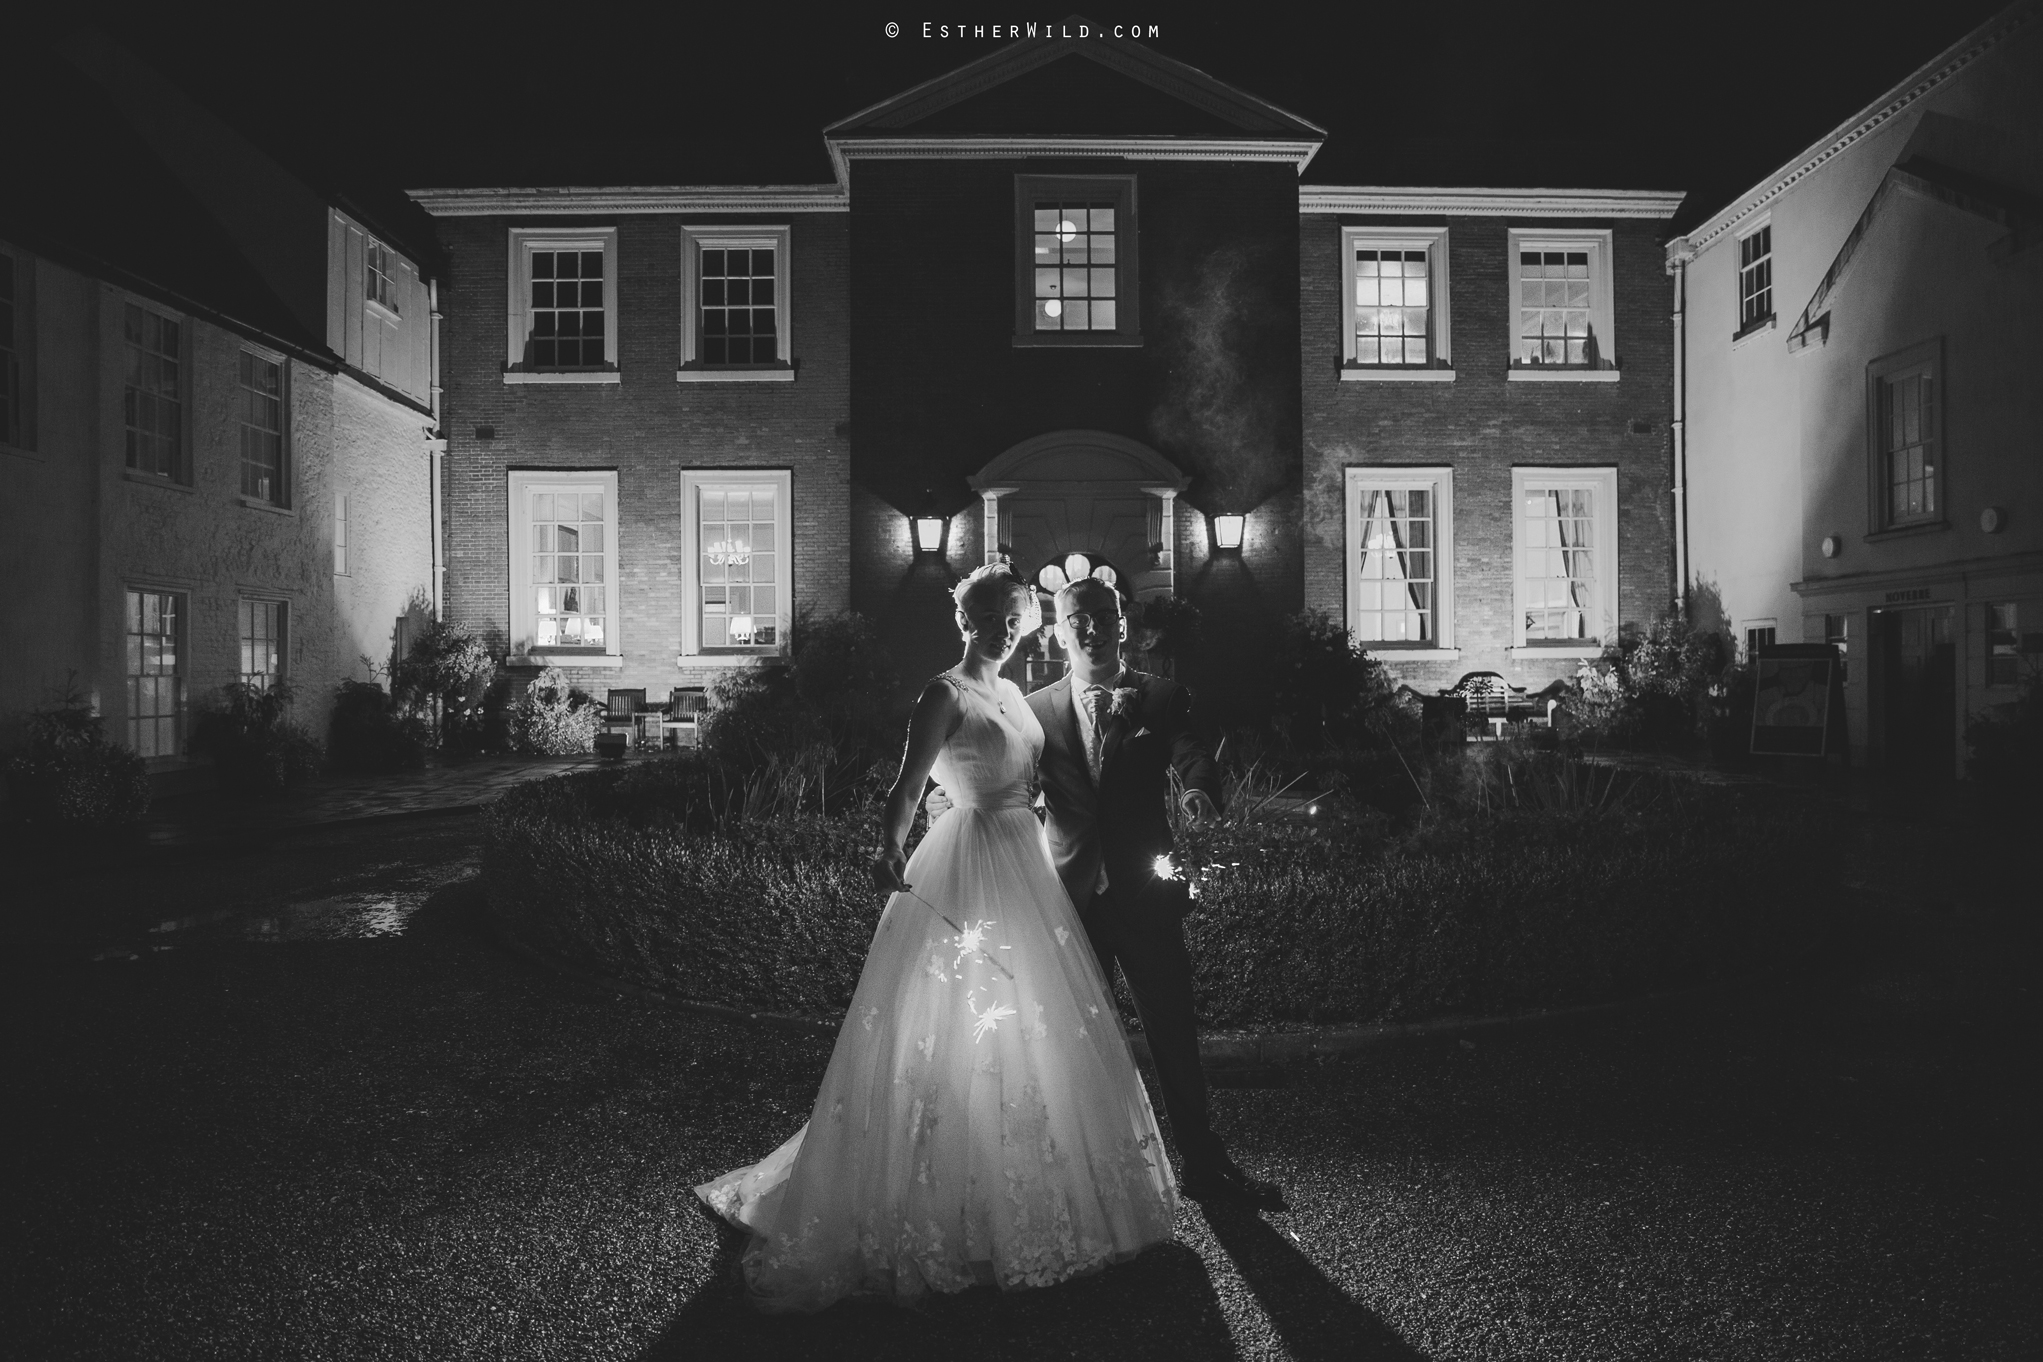 Norwich_Assembly_House_Wedding_Esther_Wild_Photographer_IMG_4819-1.jpg